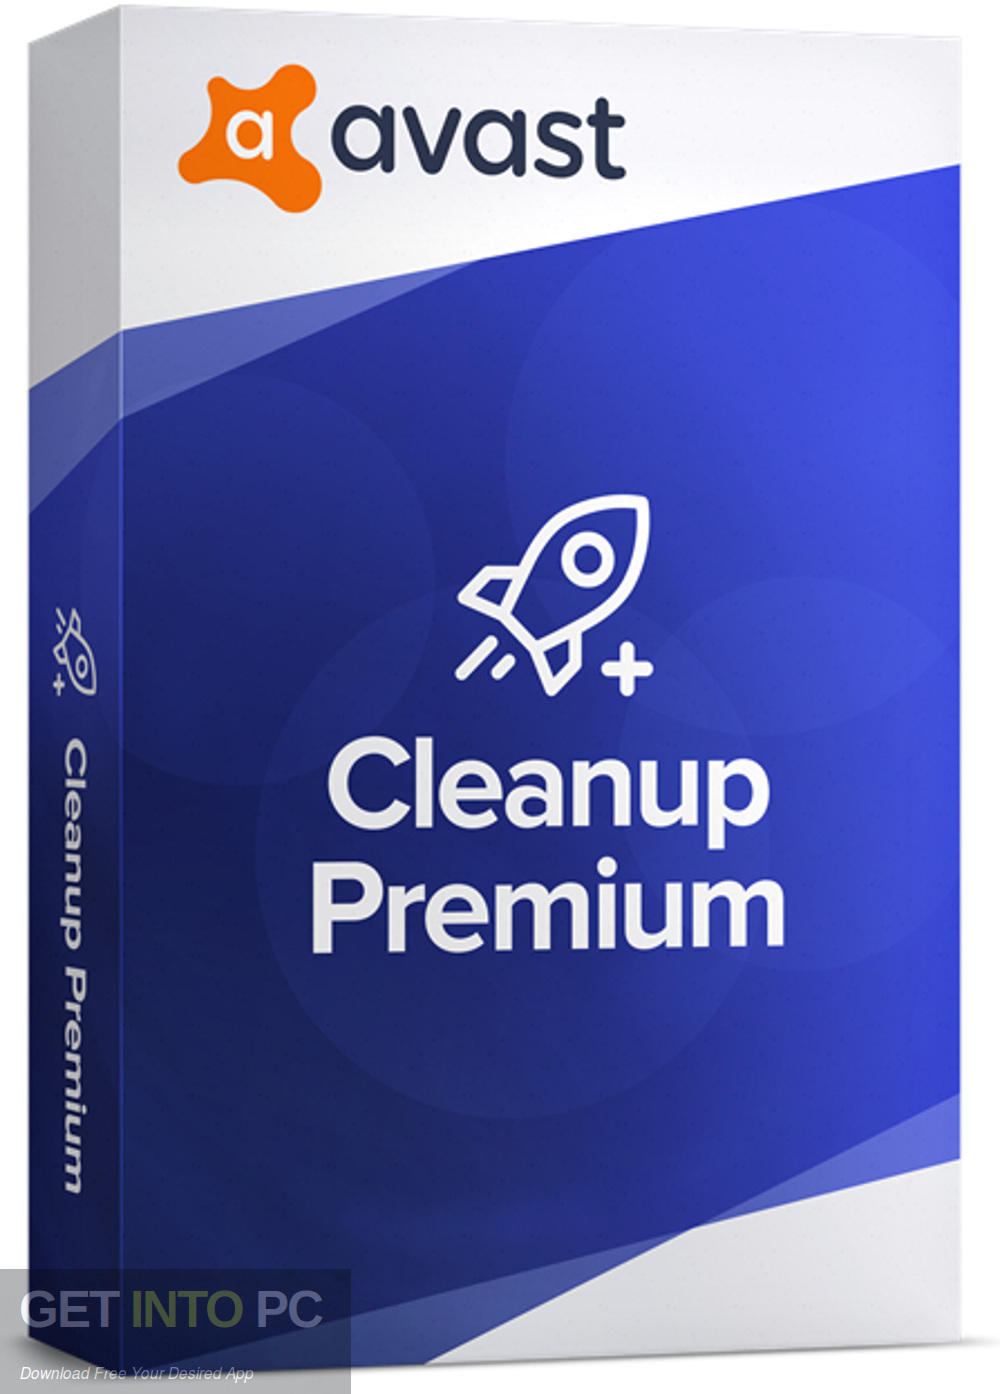 Avast Cleanup Premium 2018 Free DOwnload-GetintoPC.com